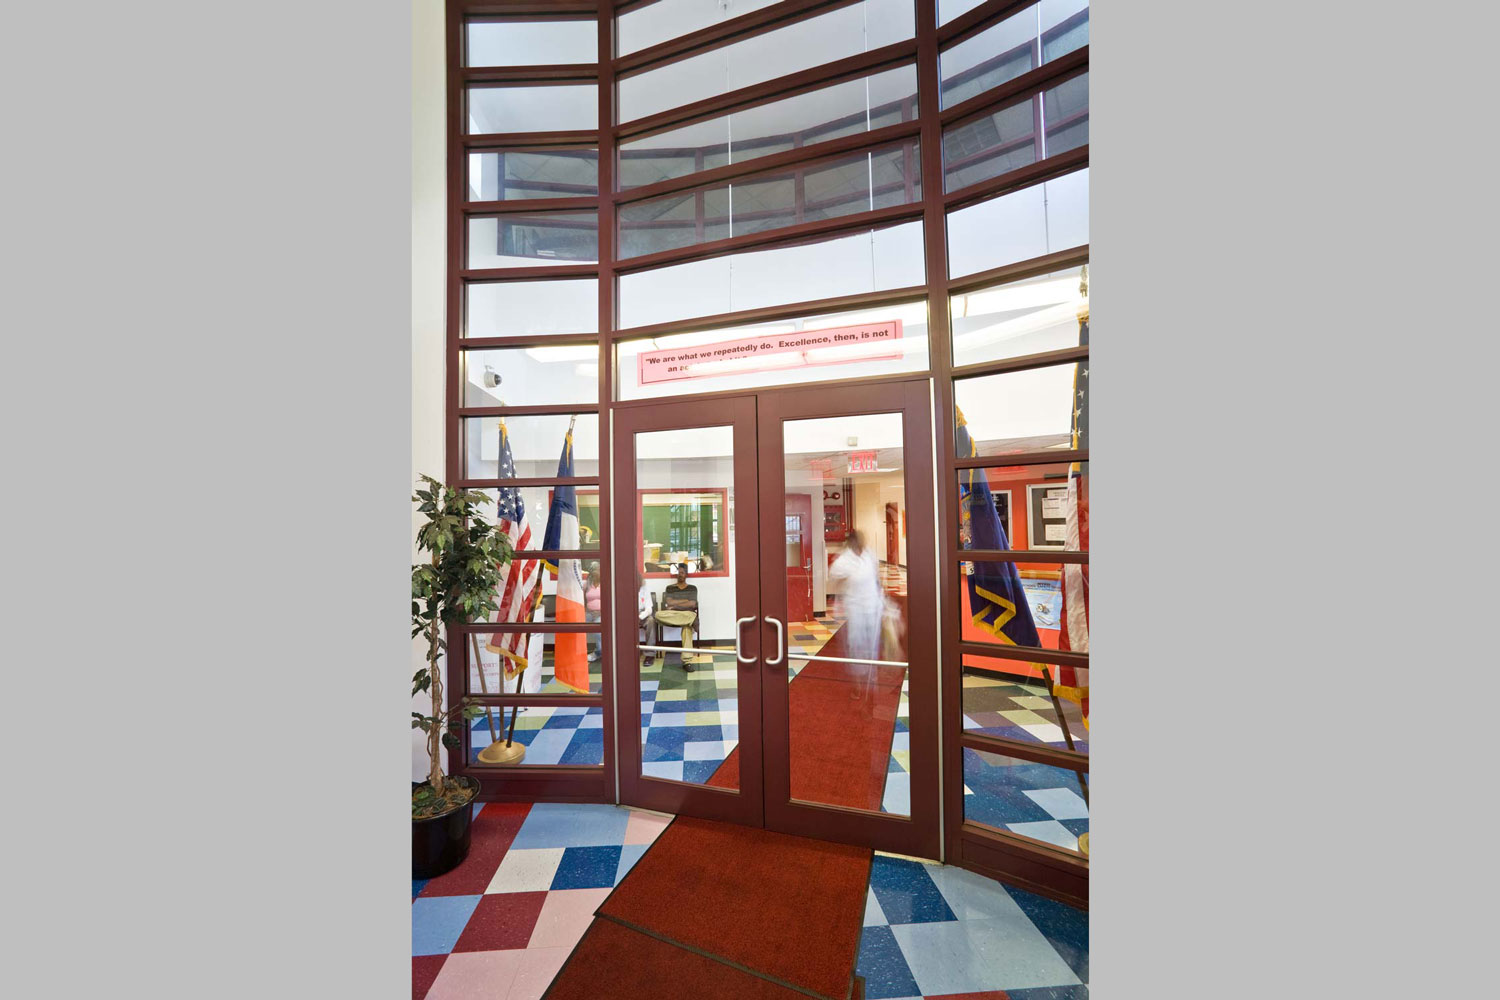 The foyer with security desk at the Acorn High School for Social Justice. Project by OCV Architects.